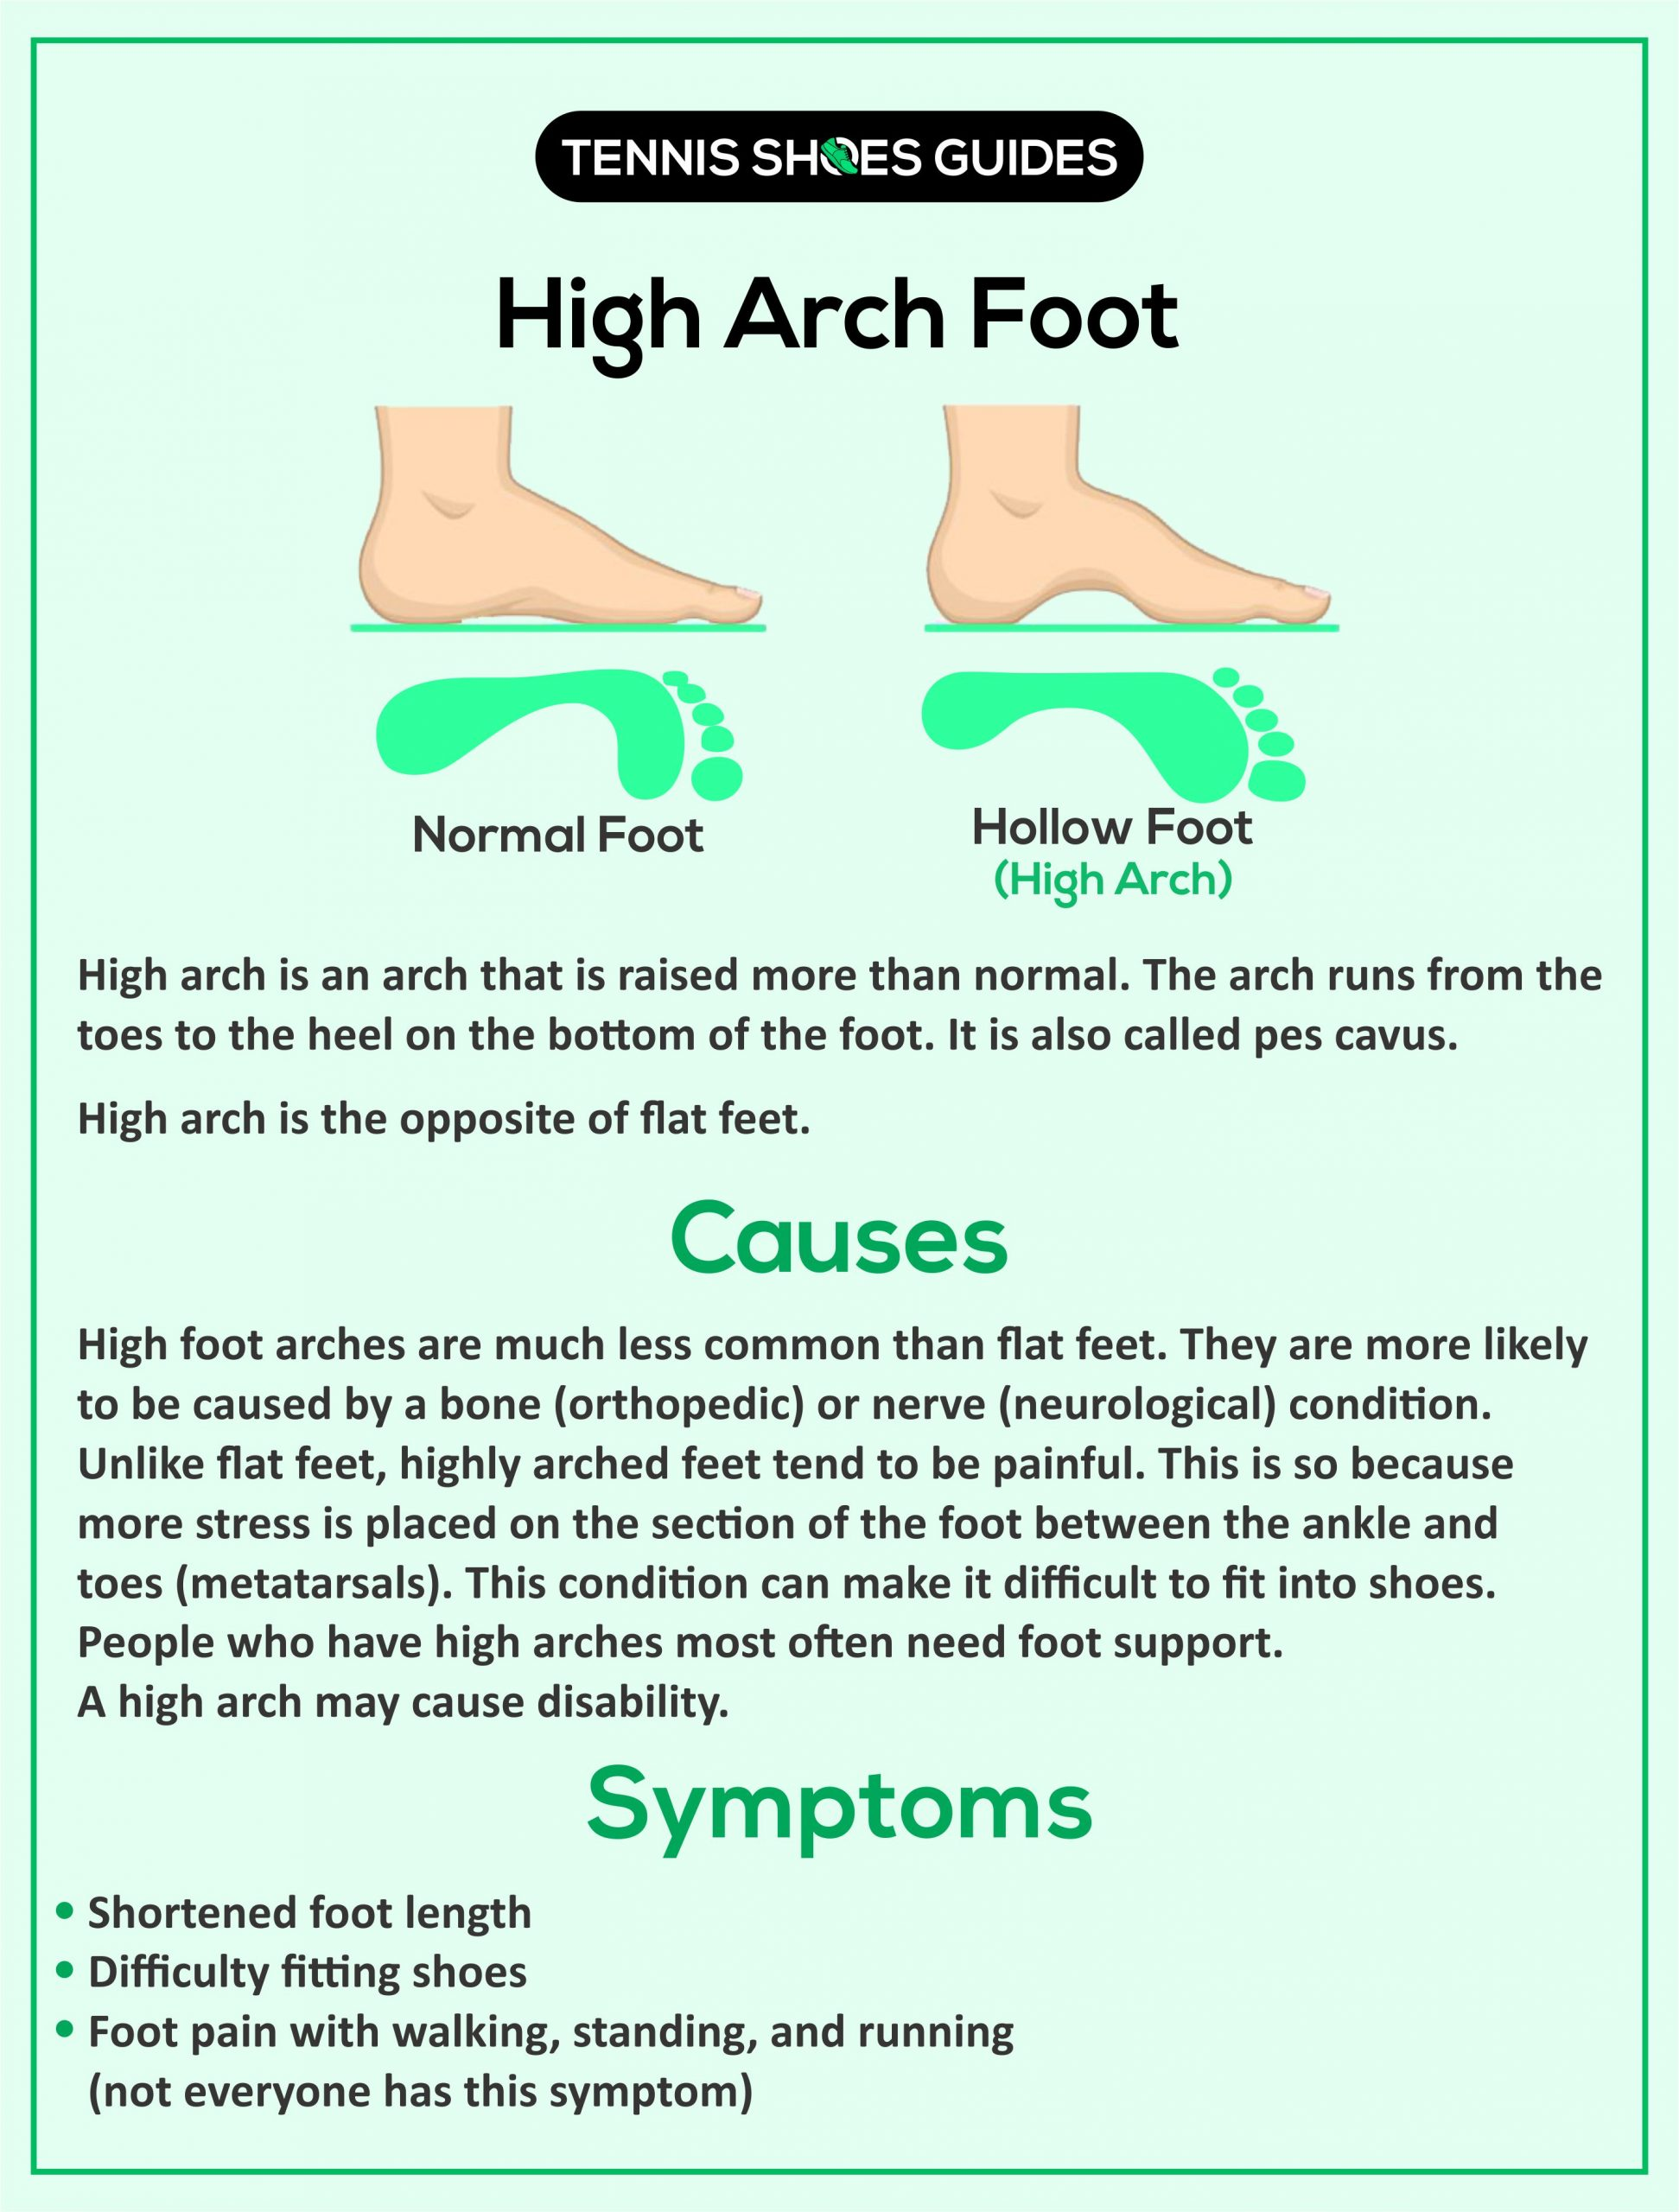 Causes and symptoms of high arch foots